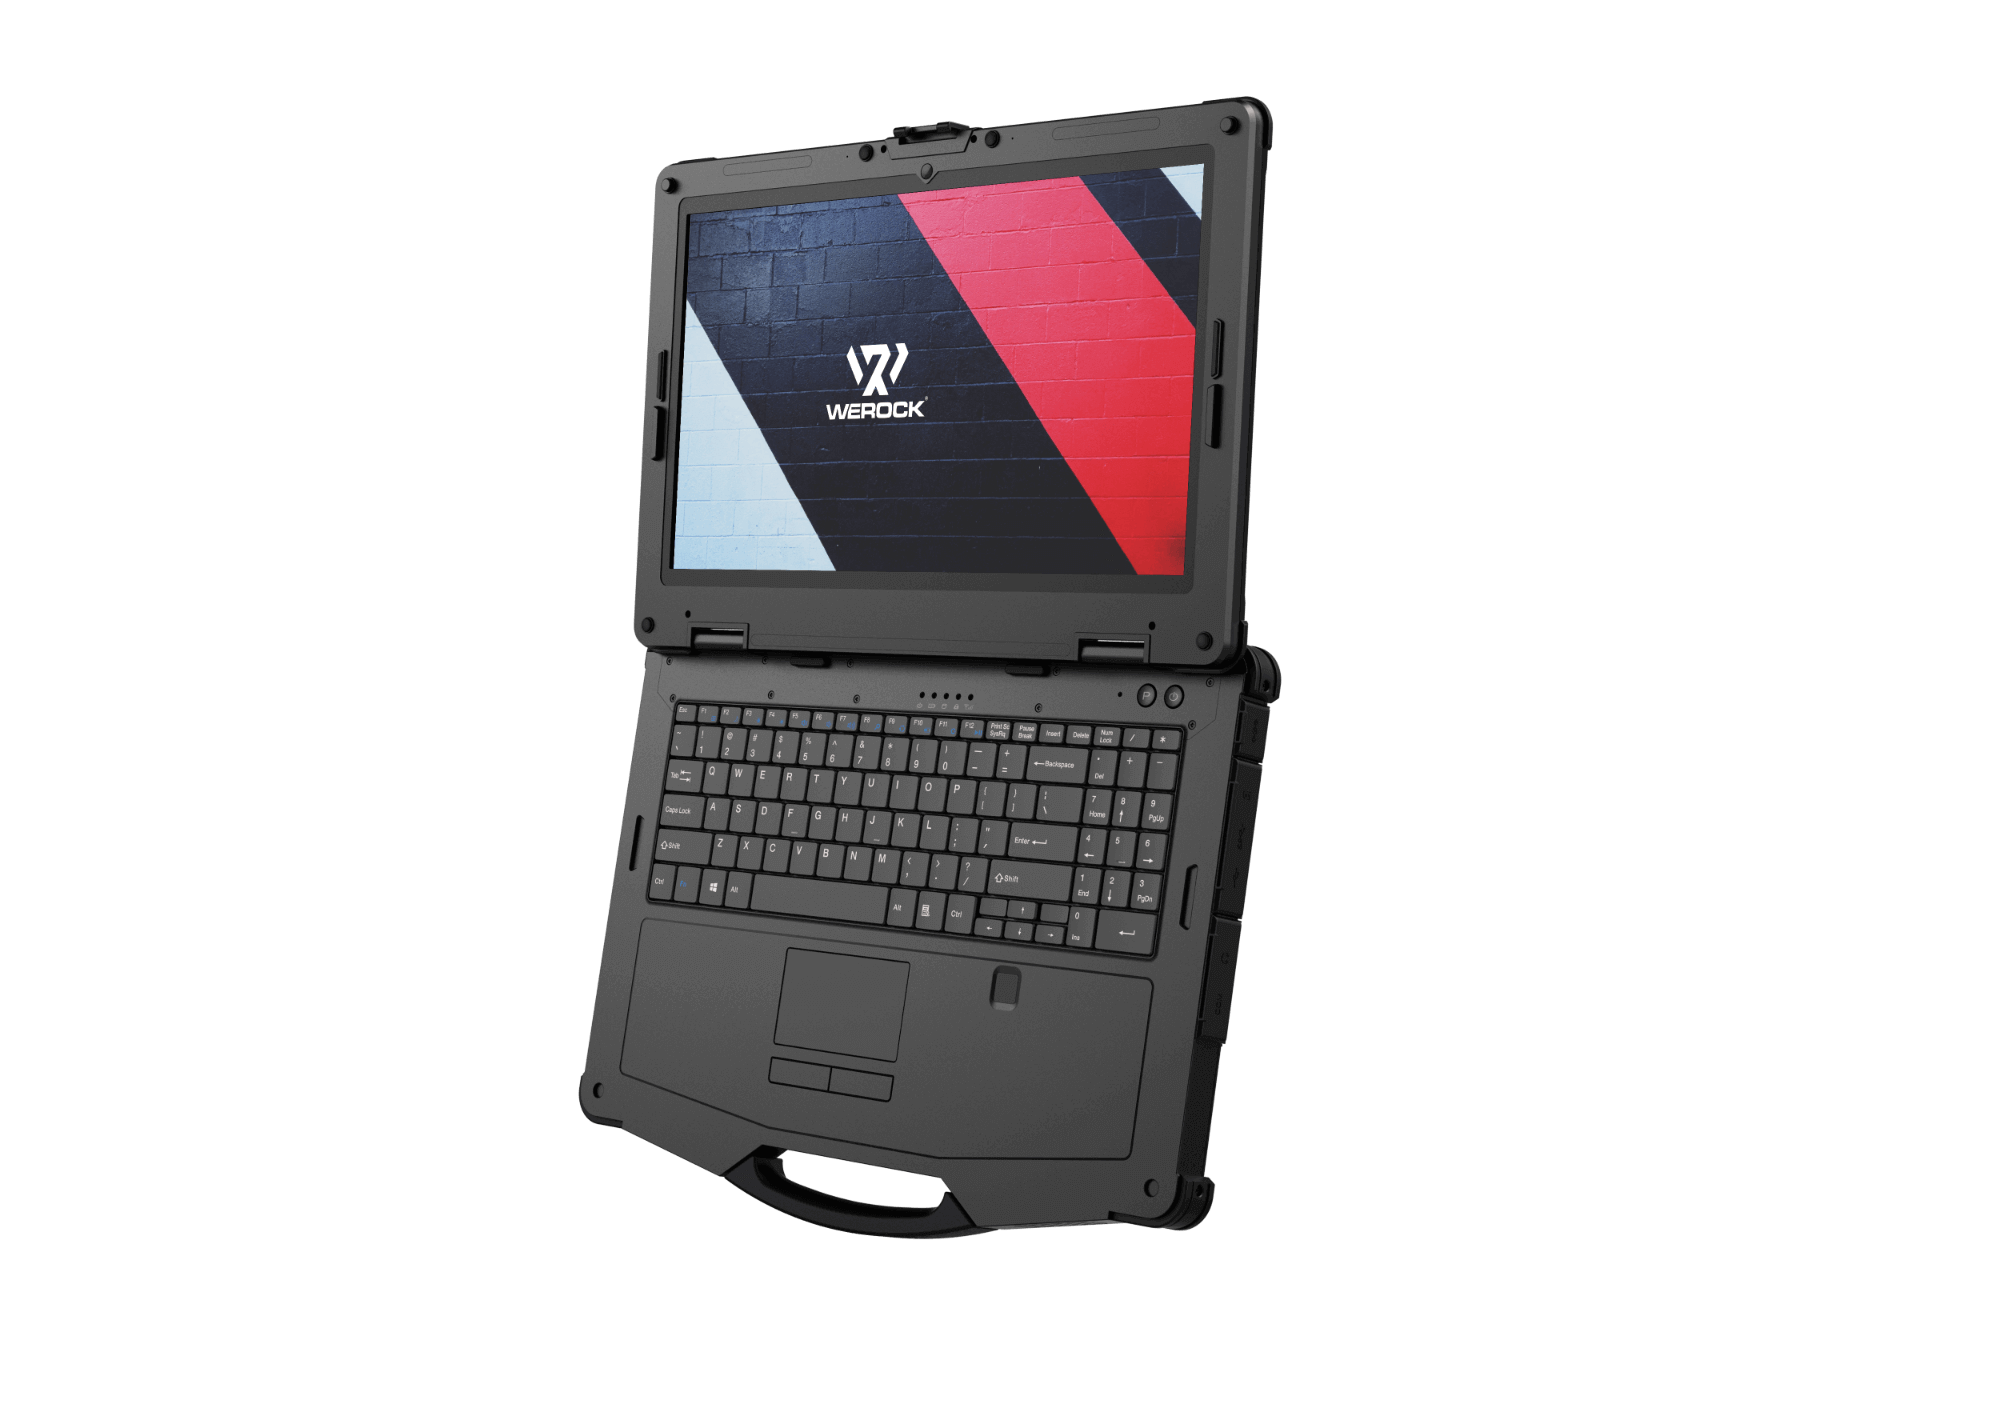 Flat view of a rugged notebook